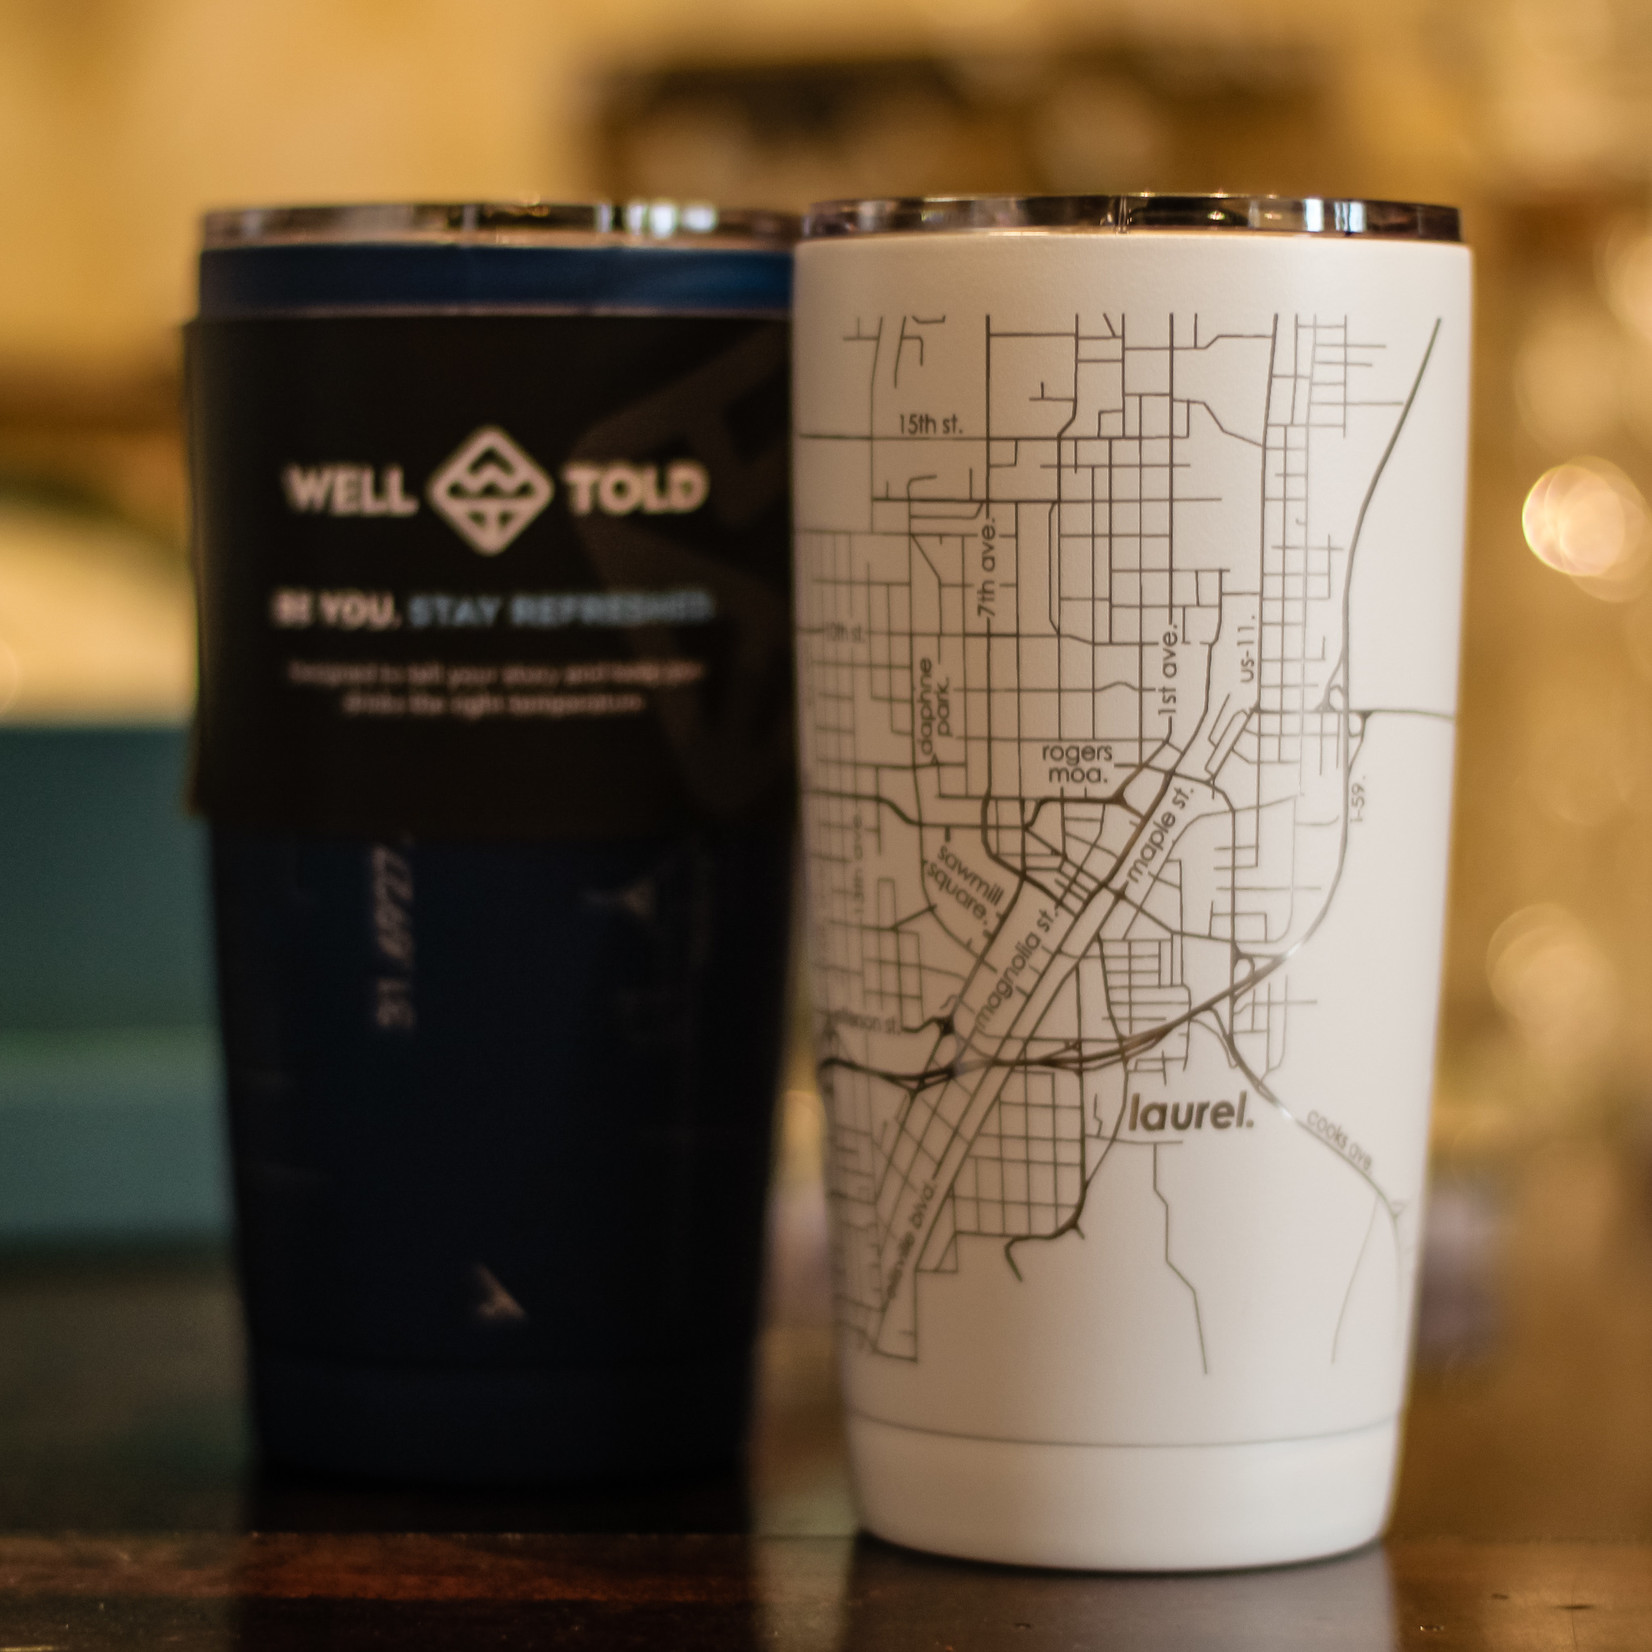 Well Told Well Told Laurel Tumbler